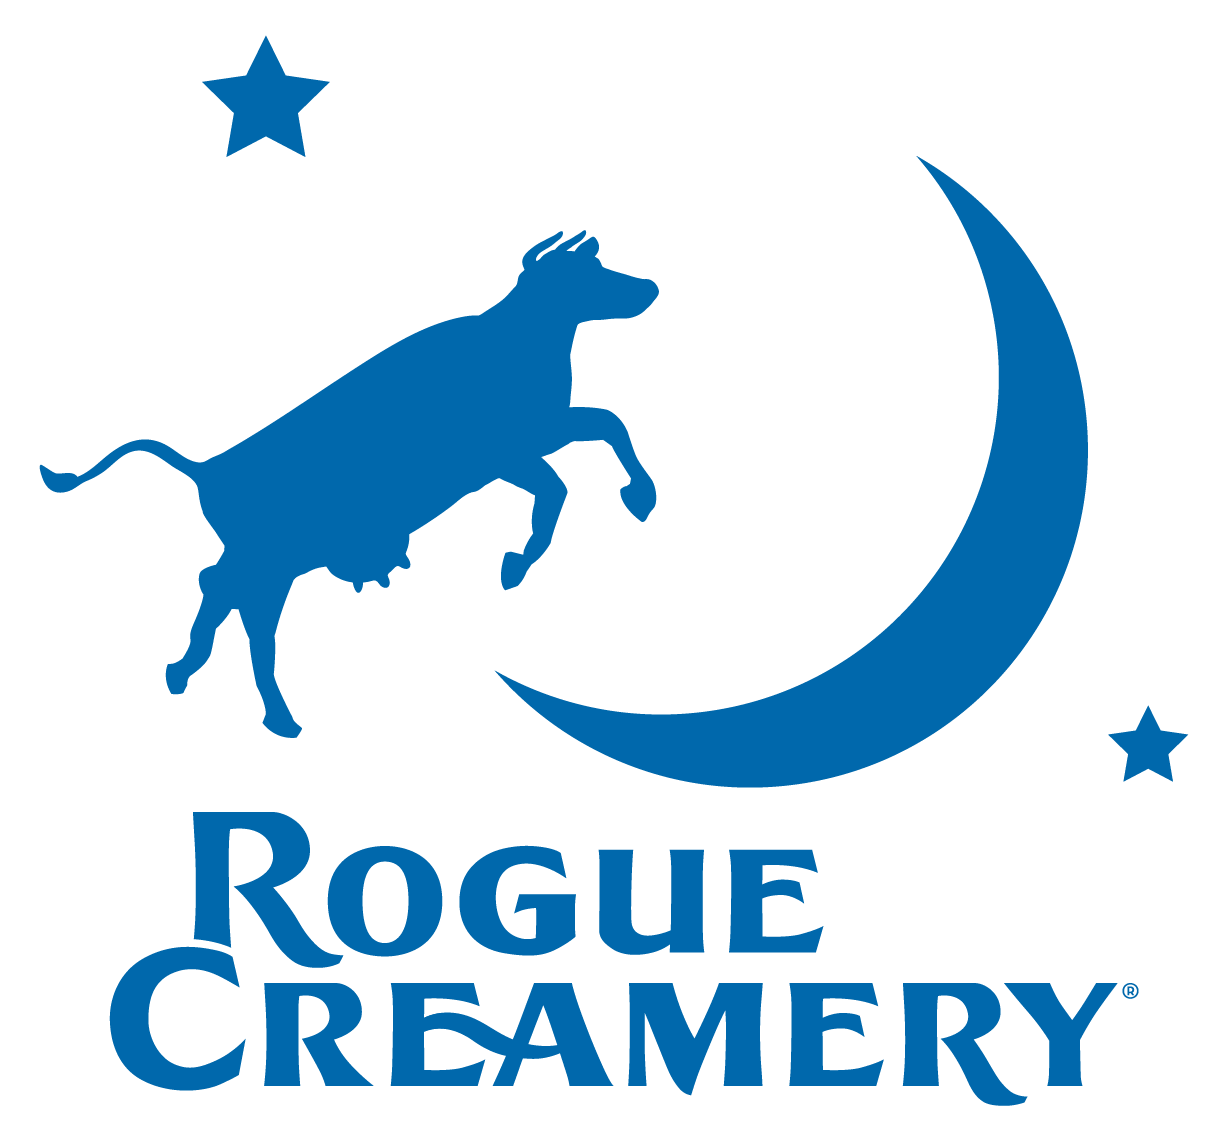 Rogue_Creamery_Logo.png